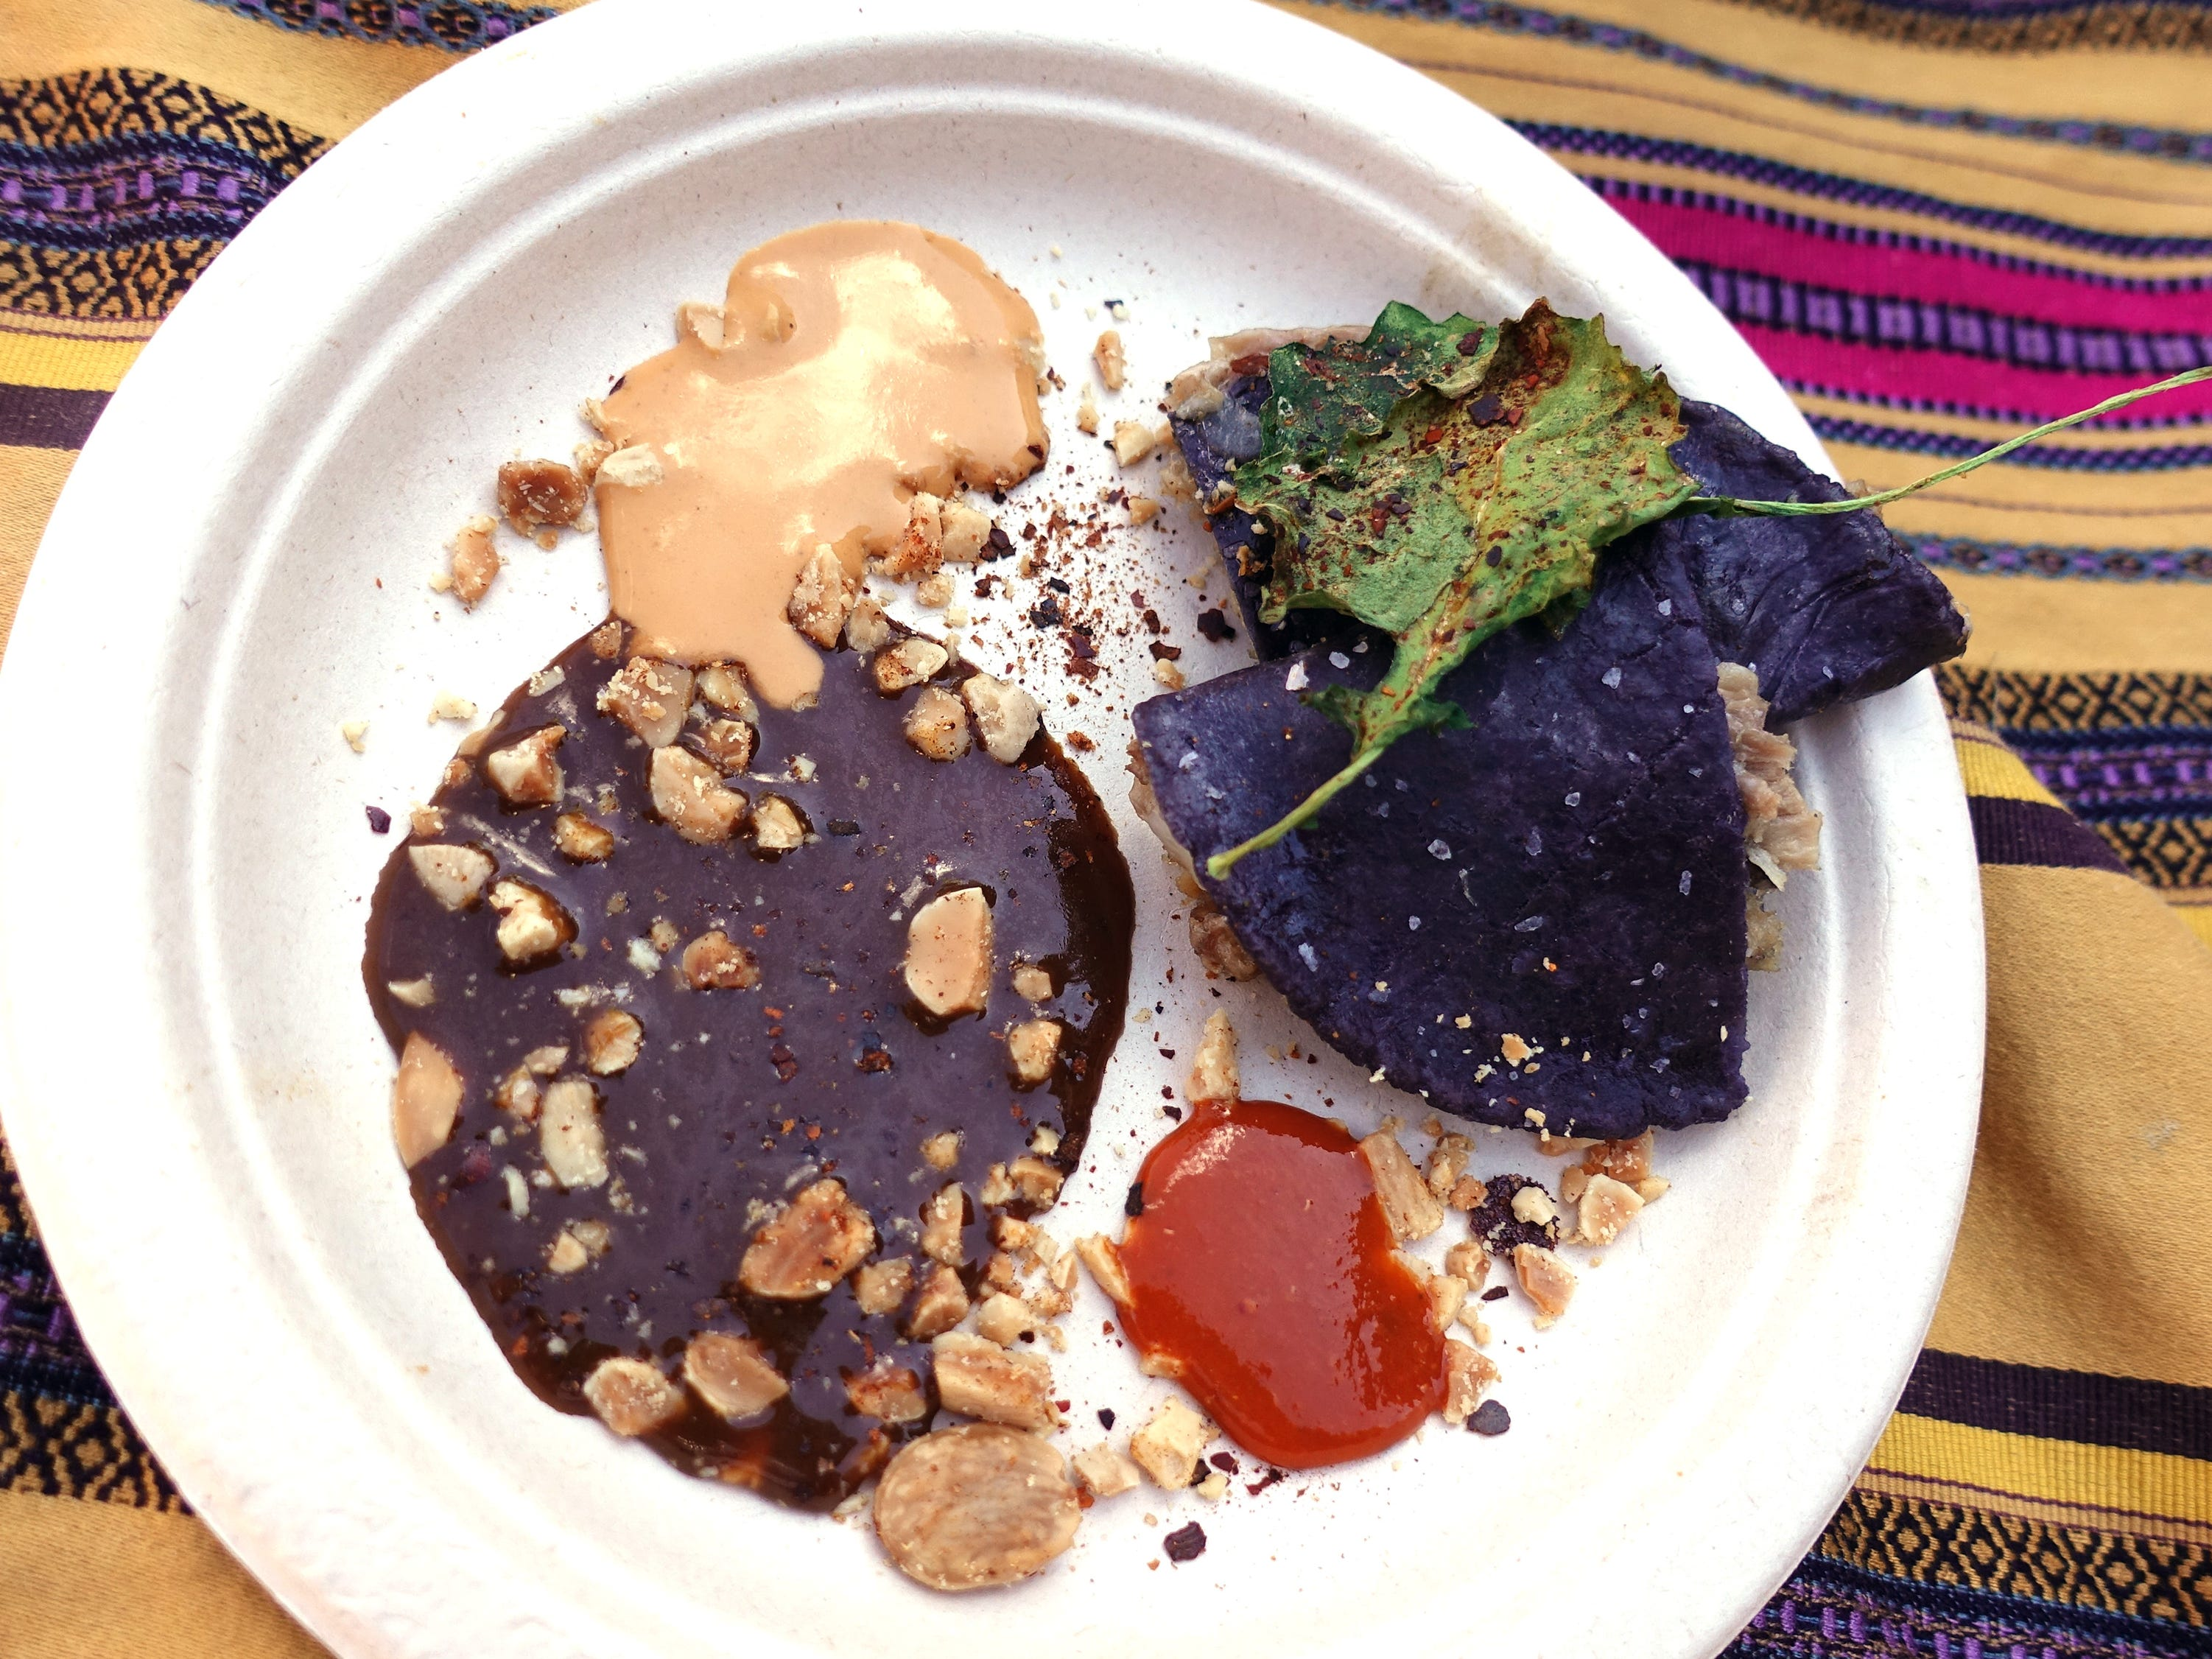 Duck carnitas quesadilla with blue corn masa, smoked mushrooms, marcona almond, crispy kale, peanut guajillo mole glaze and chiltepin salsas from The Mission at the 2019 Devour Culinary Classic at the Desert Botanical Garden in Phoenix.